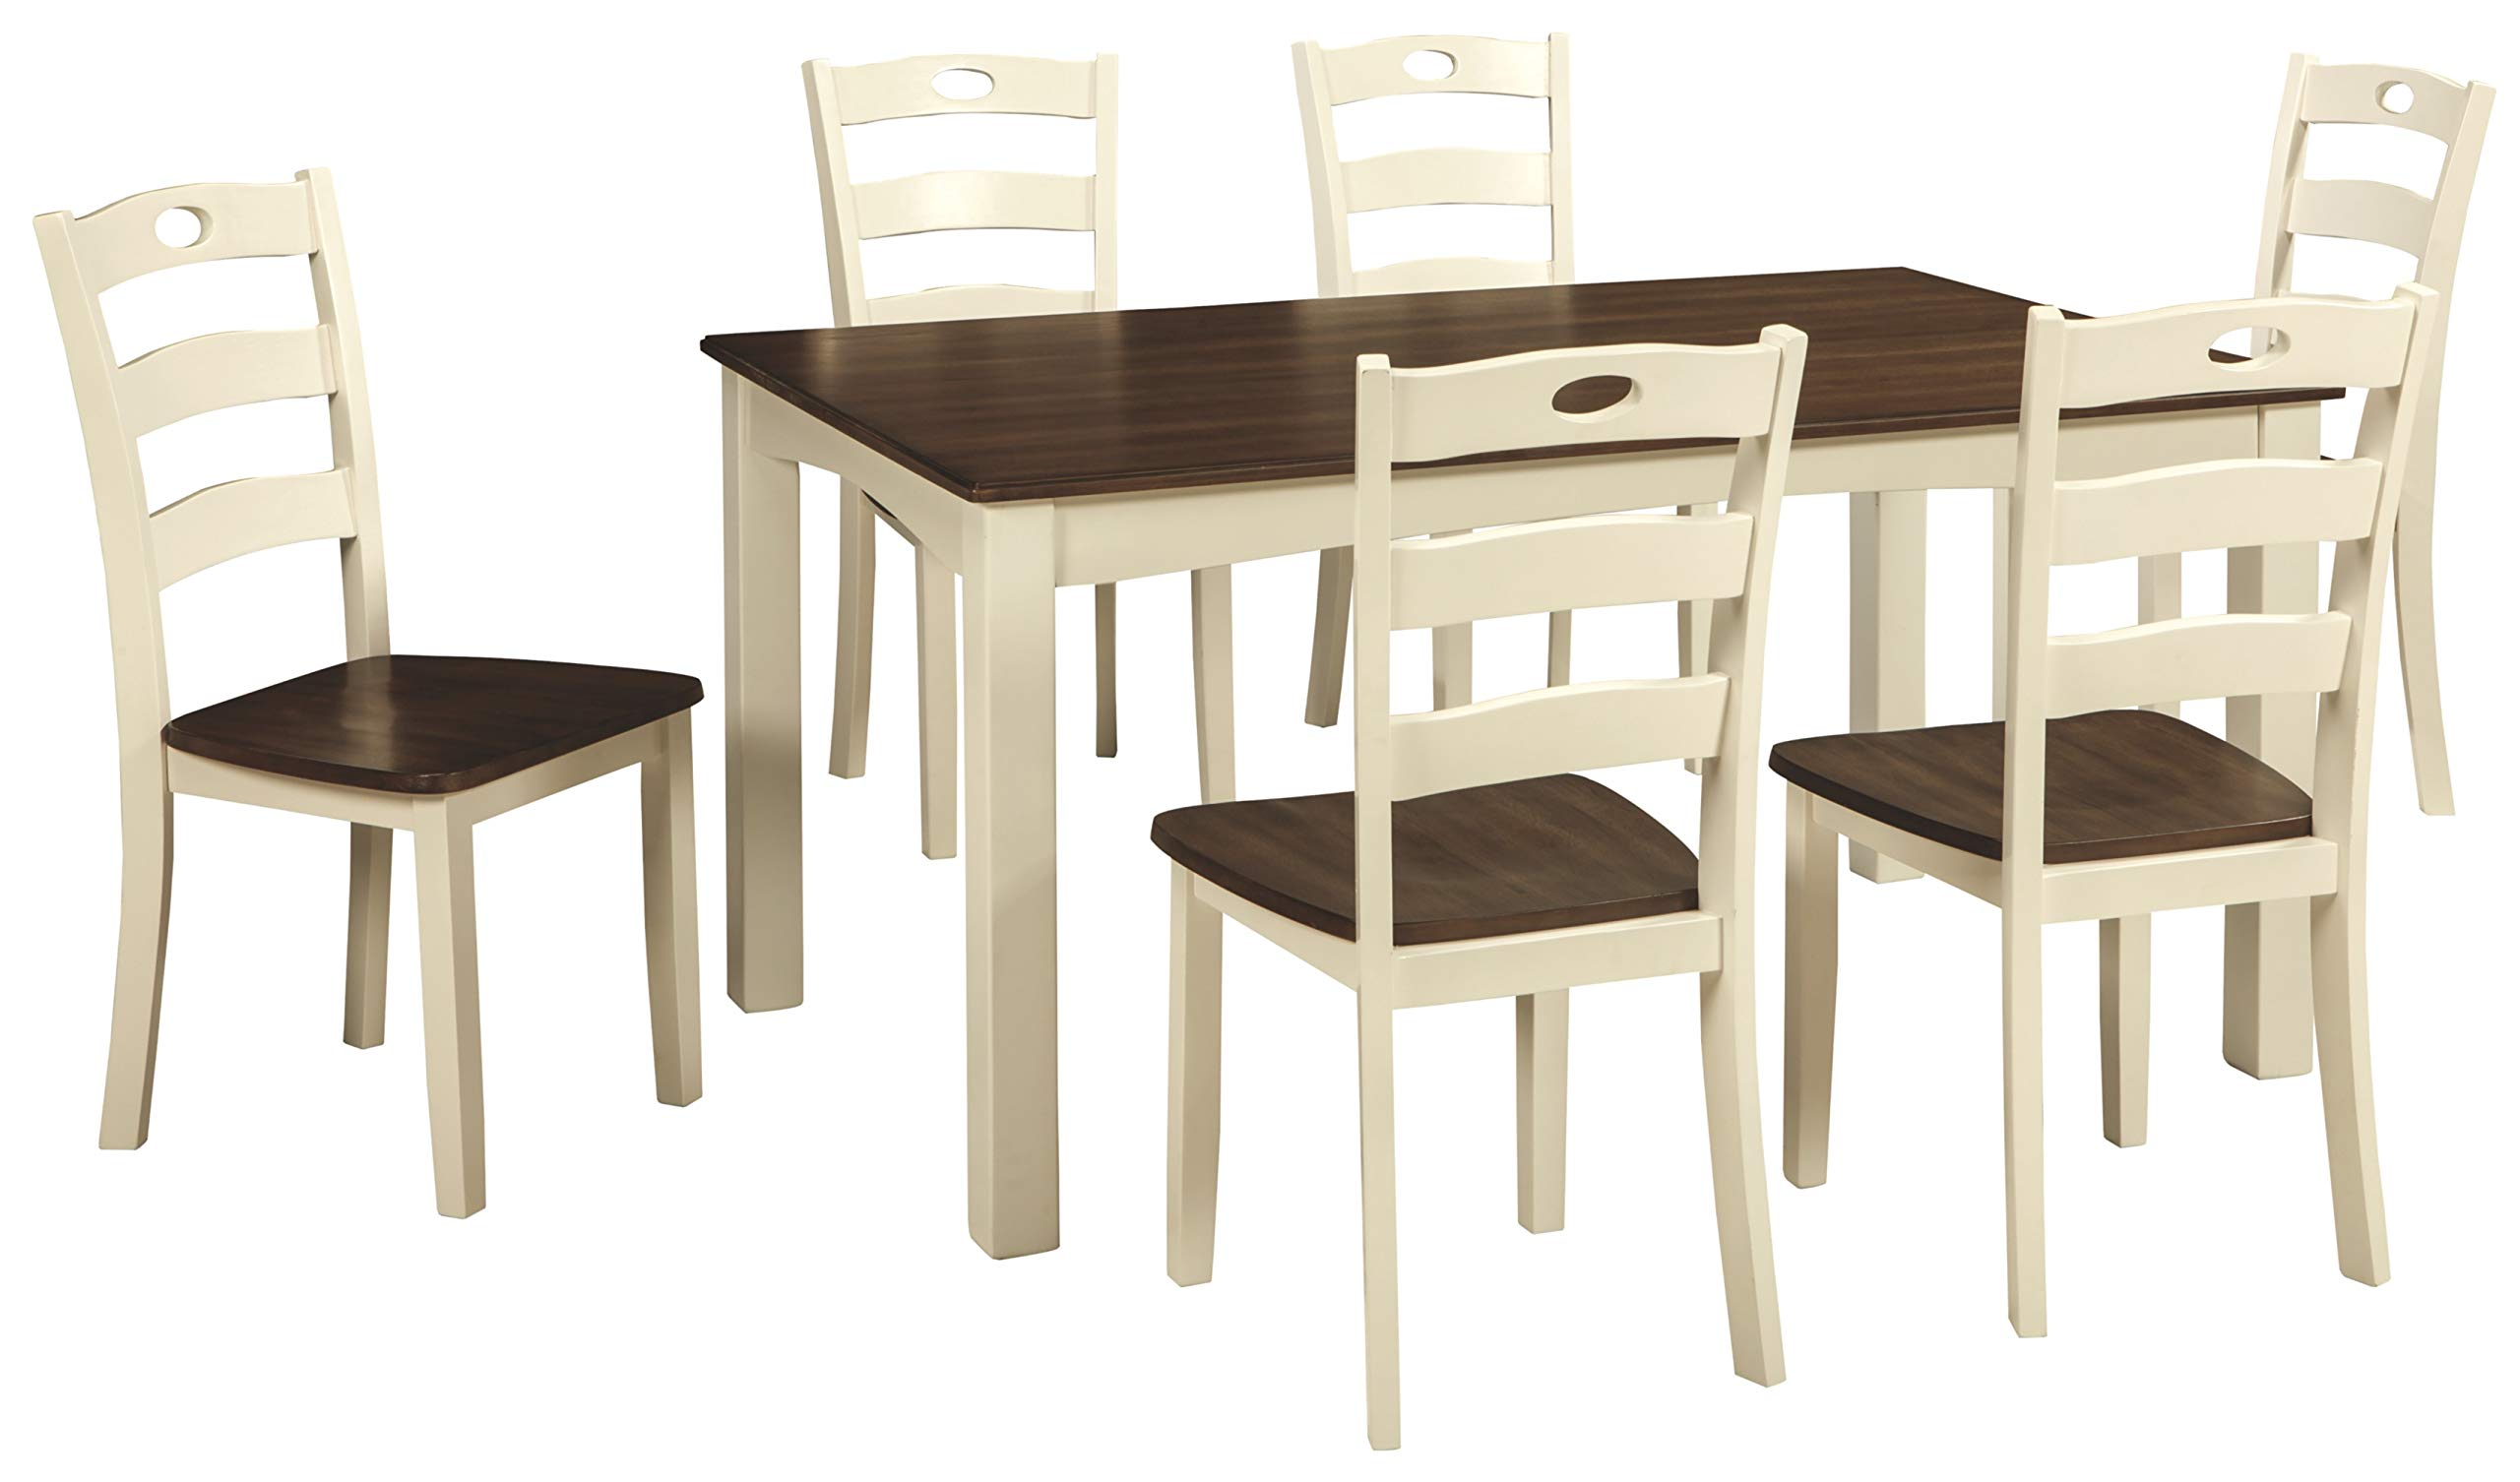 Ashley Furniture Signature Design - Woodanville Dining Room Table Set - Set of 7 - Dining Table and 6 Chairs - Casual - Cream/Brown Finish by Signature Design by Ashley